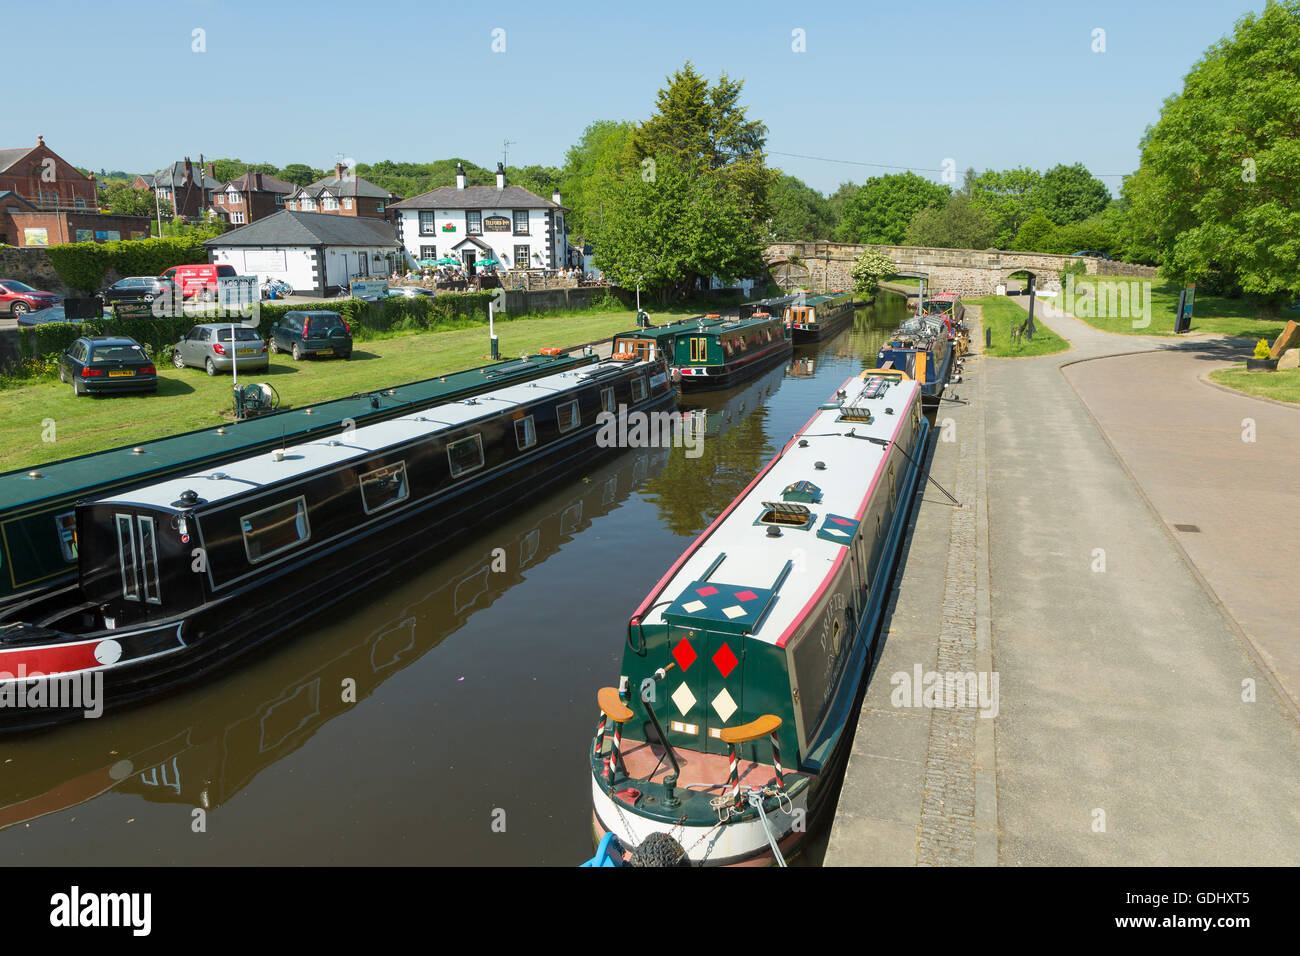 Narrow boats in the Canal Basin at Trevor, Llangollen Canal, near the Pontcysyllte Aqueduct, - Stock Image